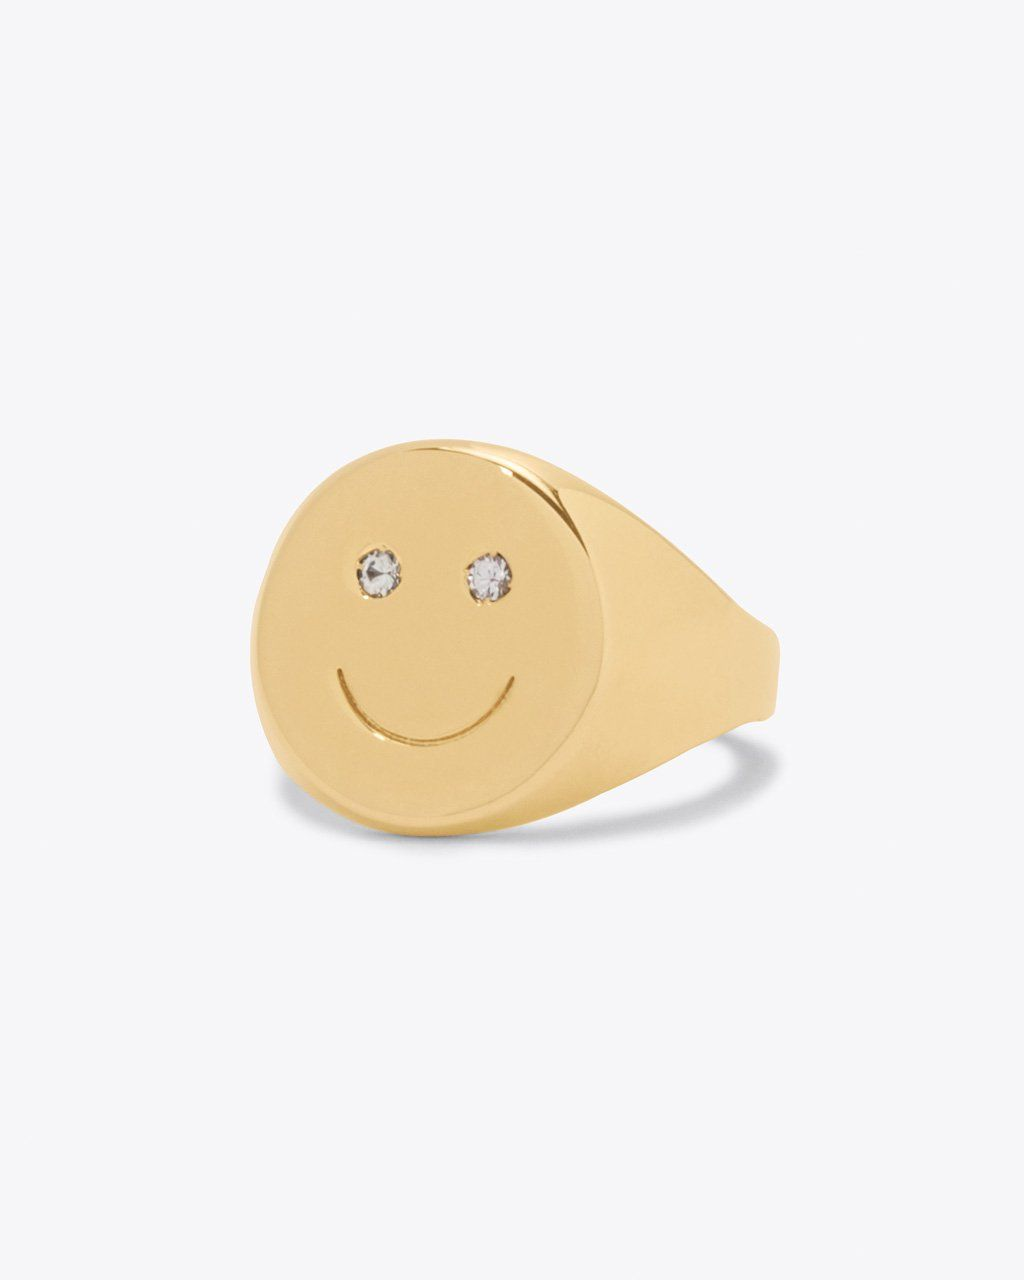 Happy Signet Ring By One Six Five Ring Ban Do Signet Ring Unique Engagement Rings Rose Gold Yellow Gold Wedding Ring